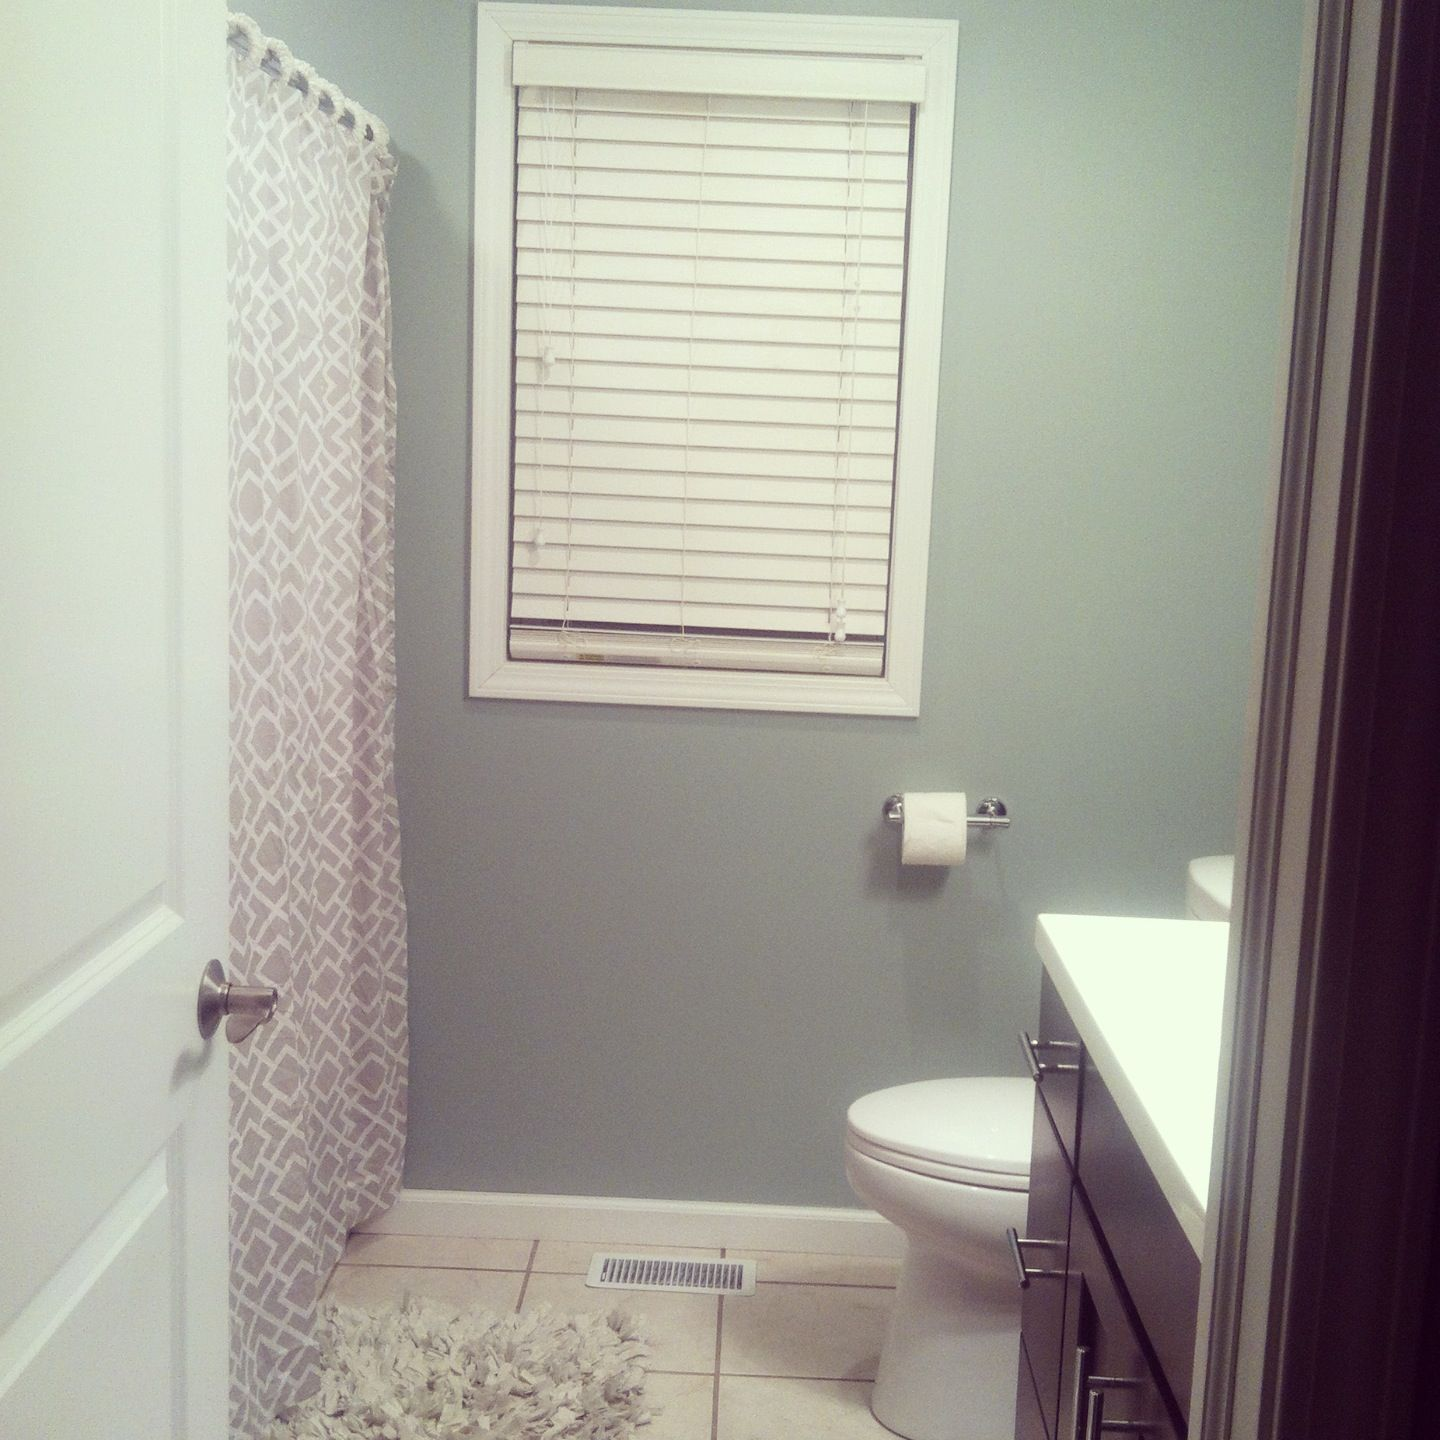 Sherwin williams silvermist paint bathroom paint colors for Silver mist paint color